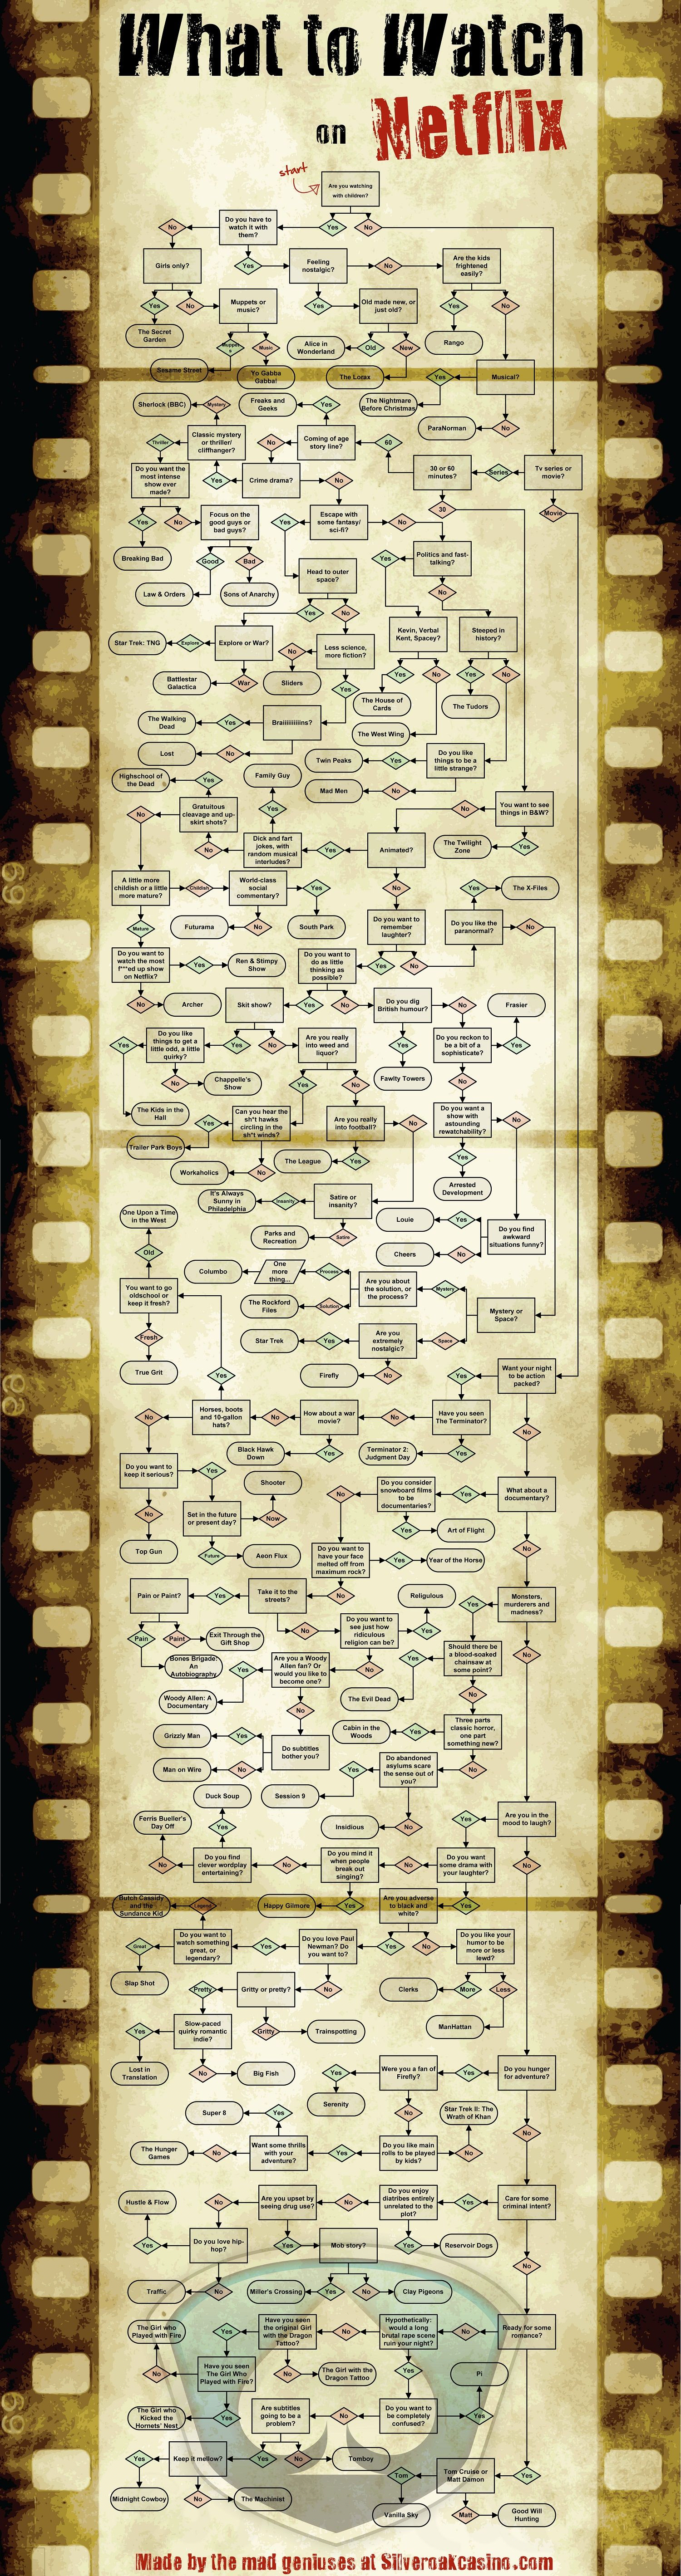 This Genius Netflix Flowchart Will Tell You Exactly What to Watch #netflixmovies